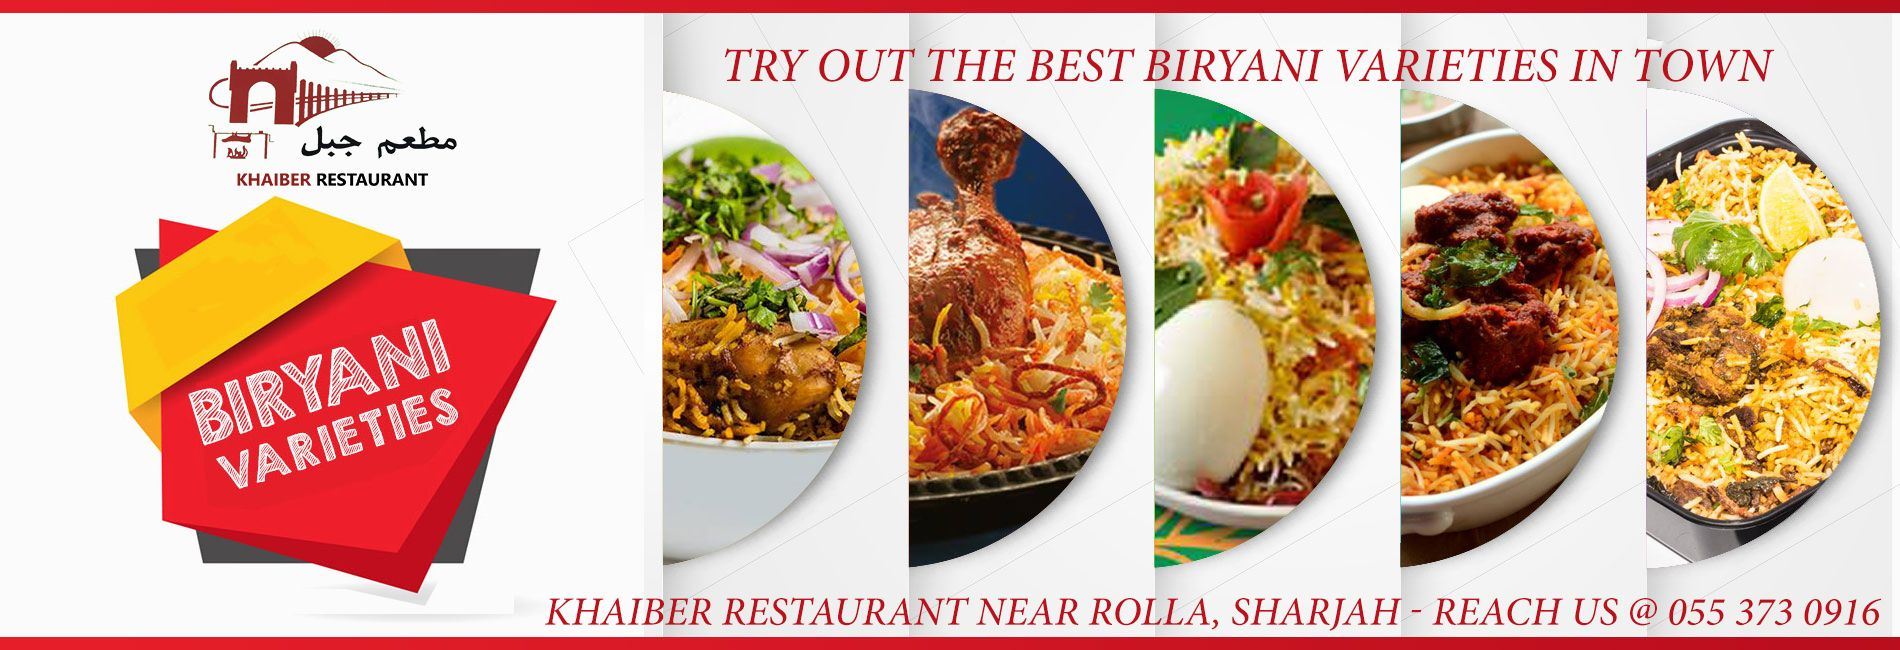 Great Foods Are In Our Restaurants That Are Incredibly Sophisticated And Stylish We Are Confident That You Will Receive An Unfo Great Recipes Cuisine Biryani